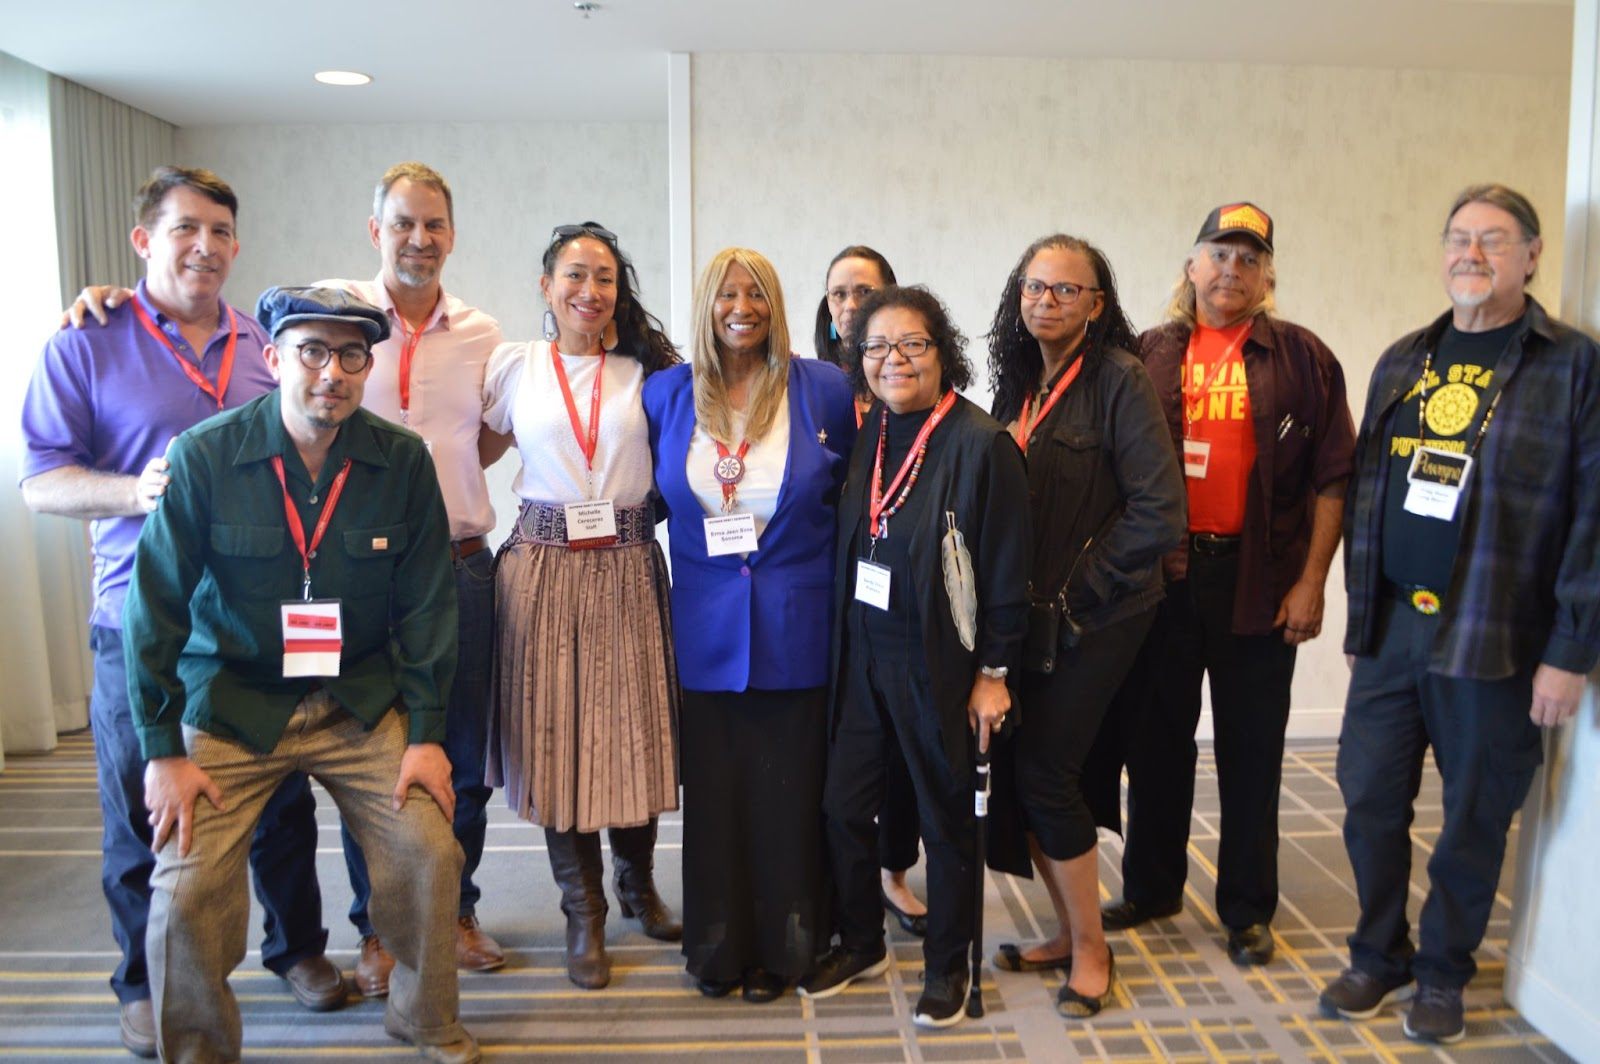 Caucus members at the Equity Conference 2020.